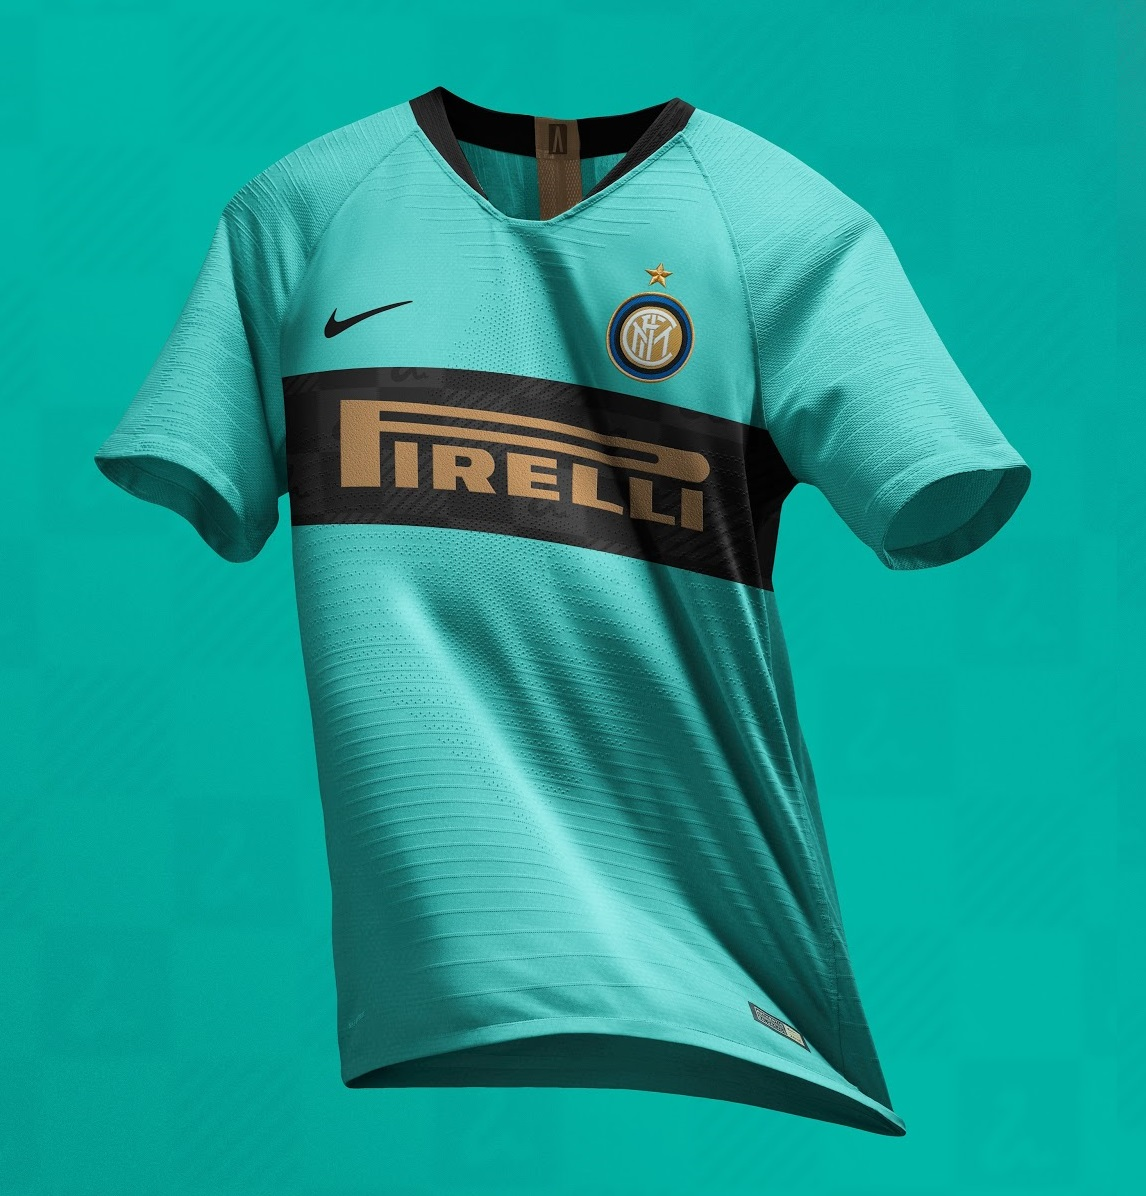 http://www.maillots-foot-actu.fr/wp-content/uploads/2018/12/Inter-Milan-2020-possible-maillot-ext%C3%A9rieur-foot.jpg